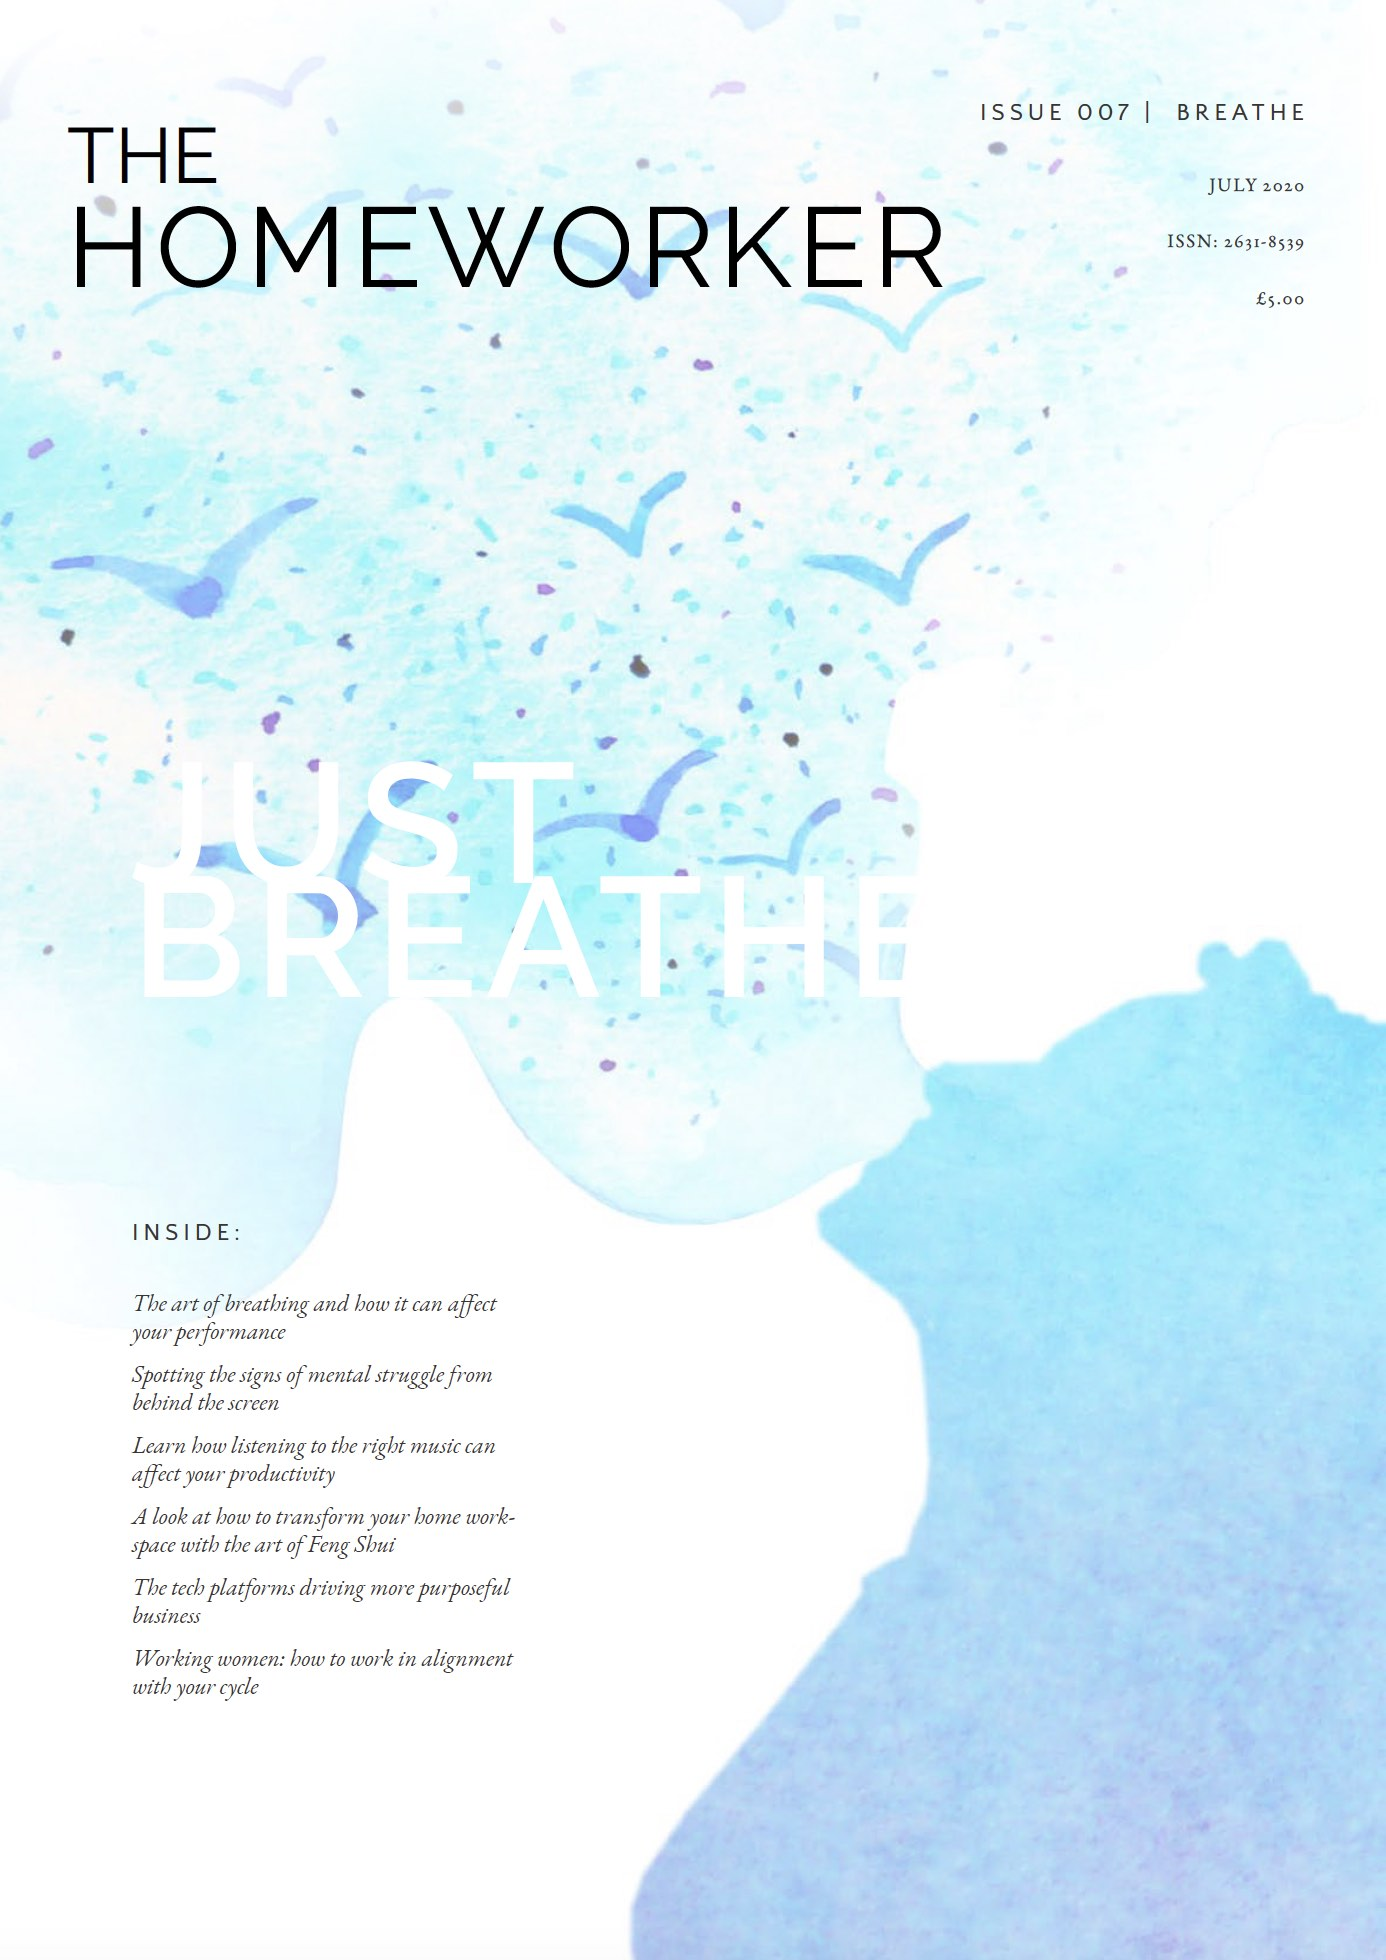 The Homeworker Magazine Breathe issue cover